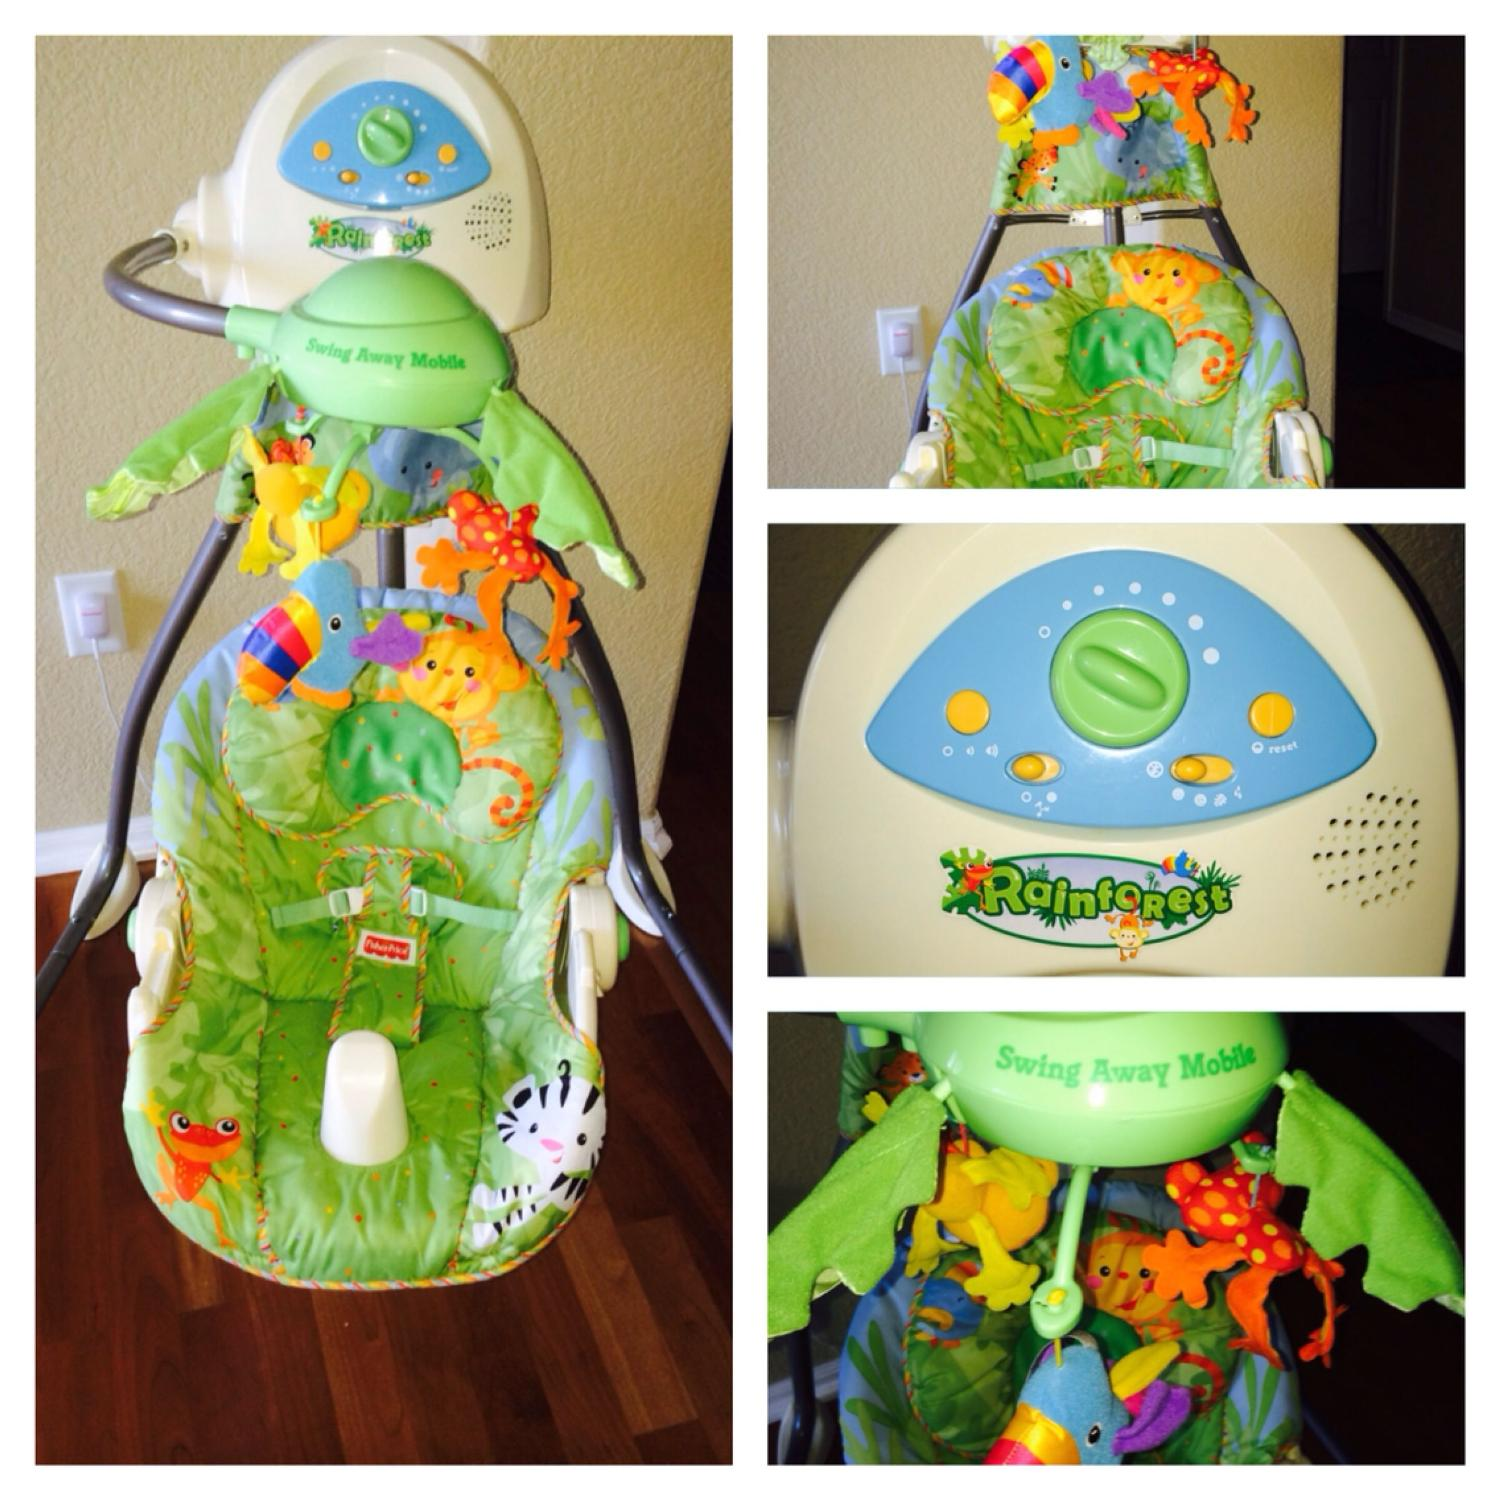 Fisher Price Rainforest Swing Away Mobile